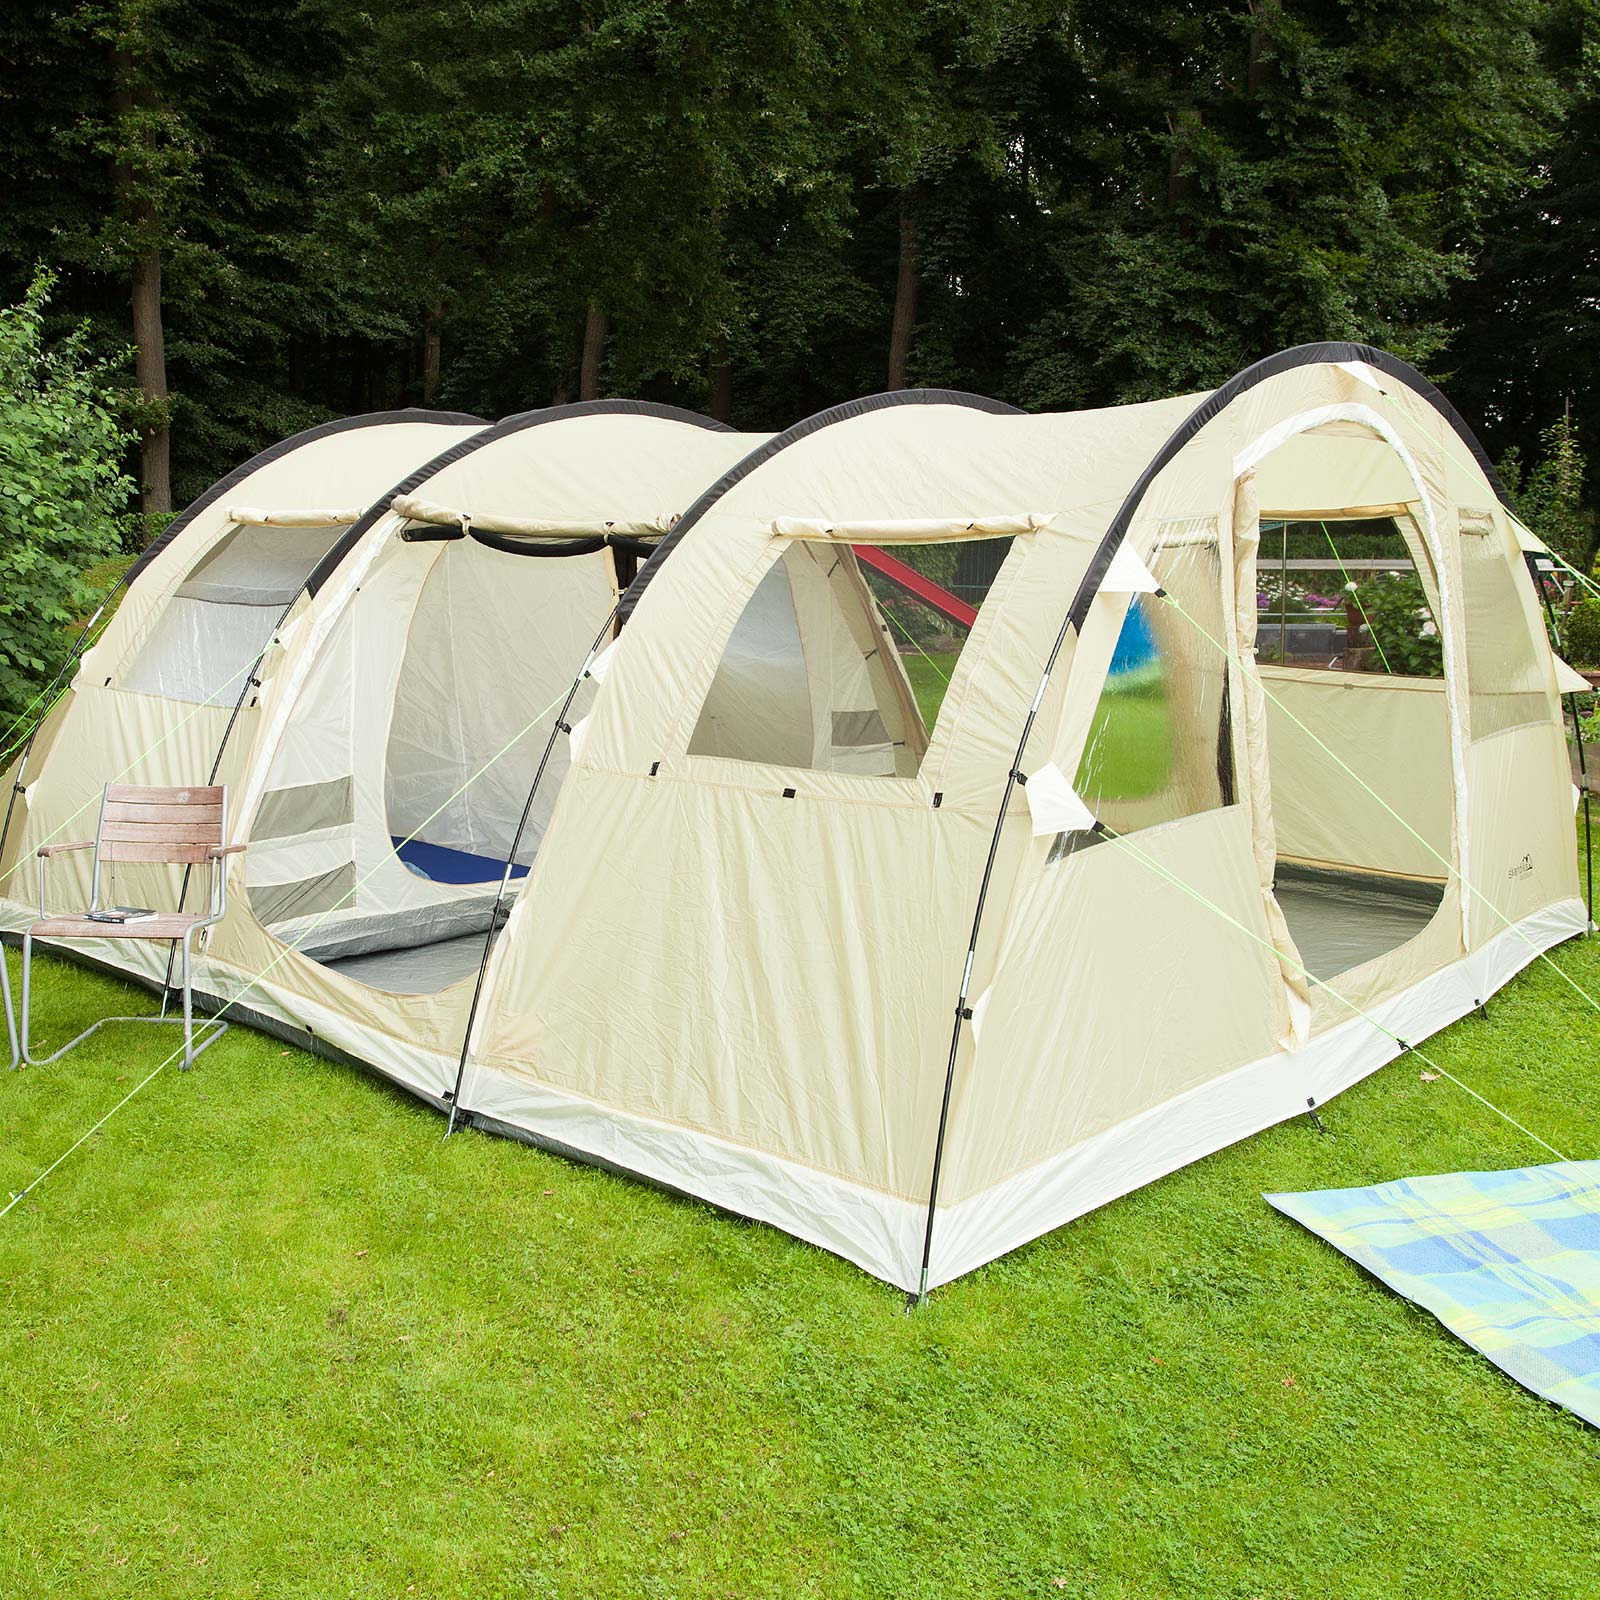 skandika gotland 6 pers tente camping tunnel familiale 540x450cm sable neuf ebay. Black Bedroom Furniture Sets. Home Design Ideas